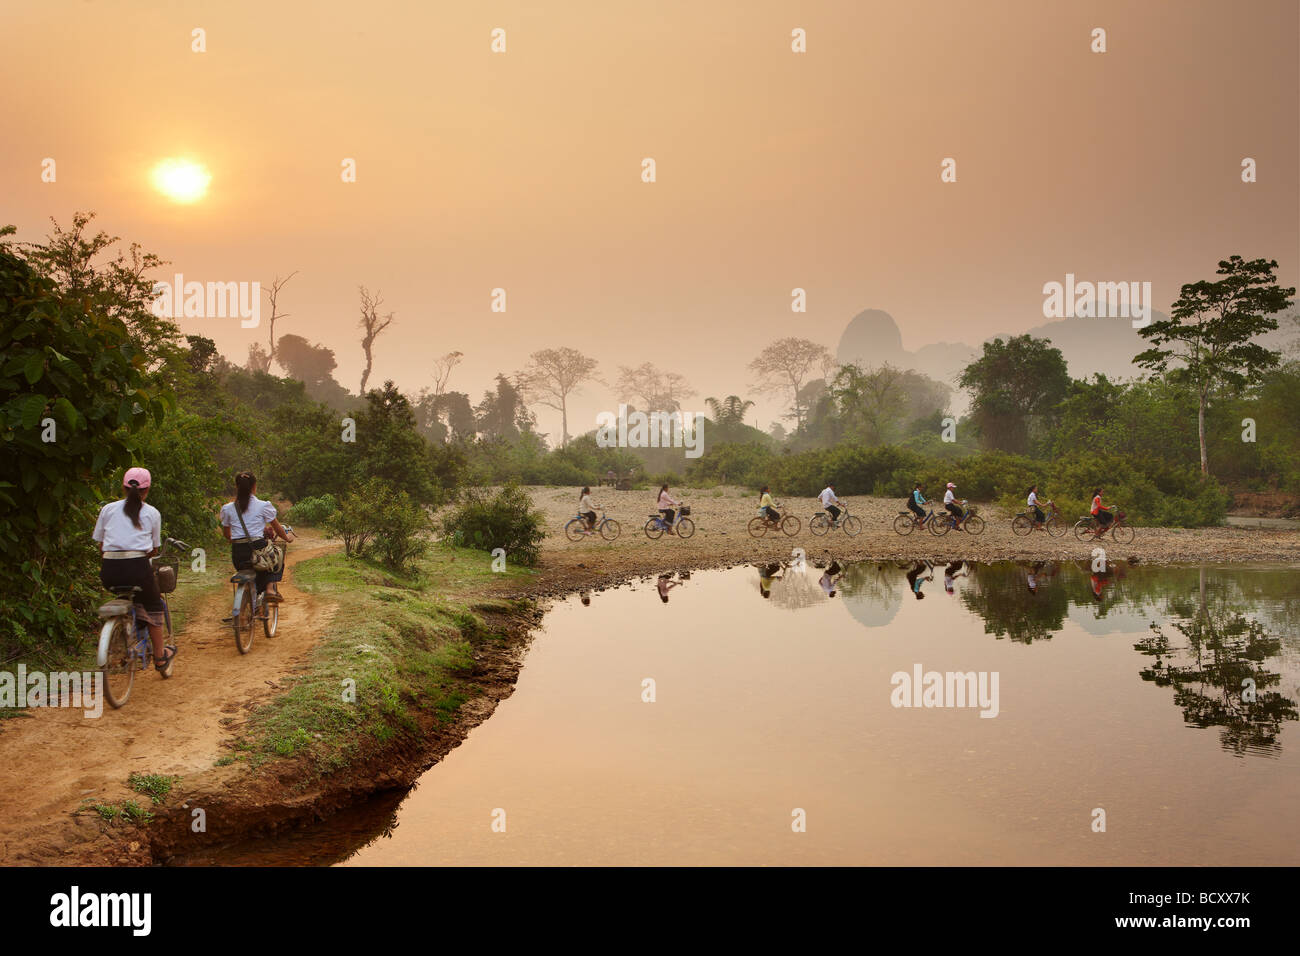 cyclists at dawn, rush hour in the countryside near Vang Vieng, Laos Stock Photo